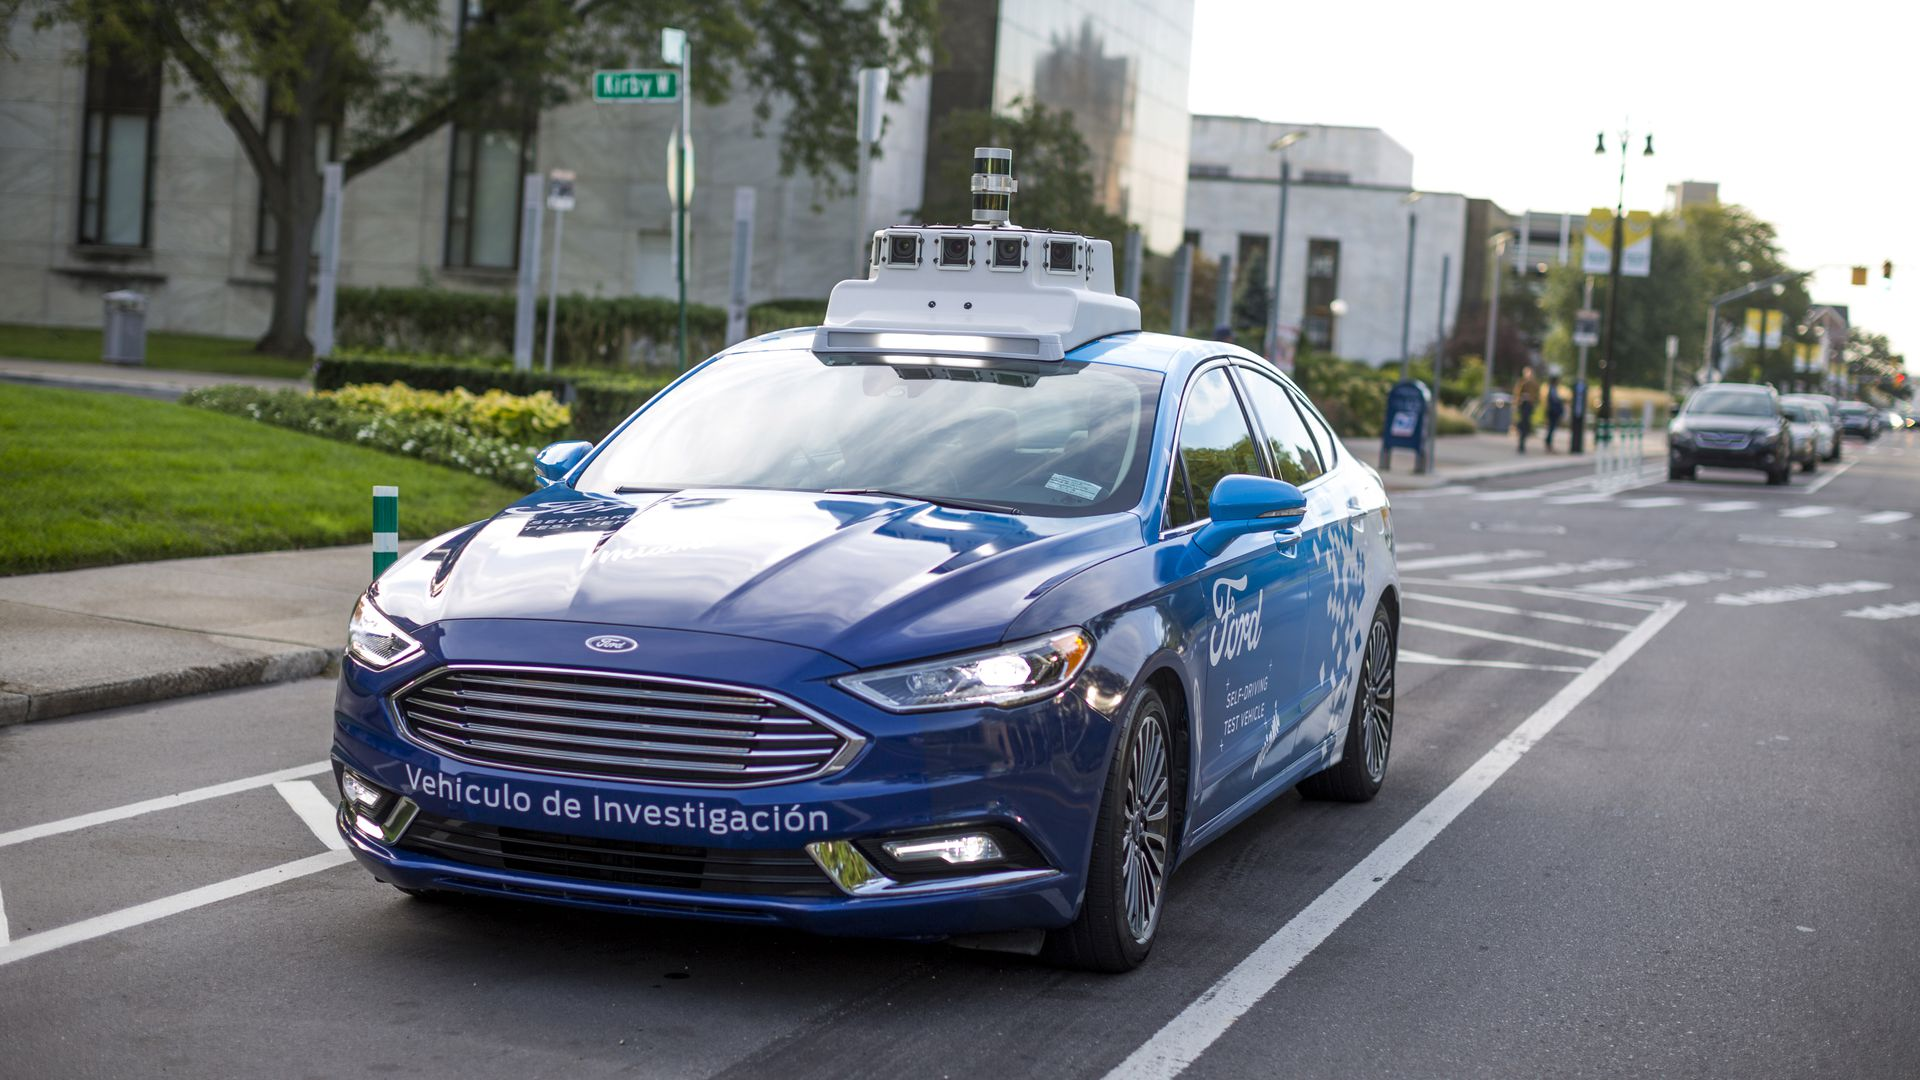 Ford self-driving test vehicle with lightbar communication system